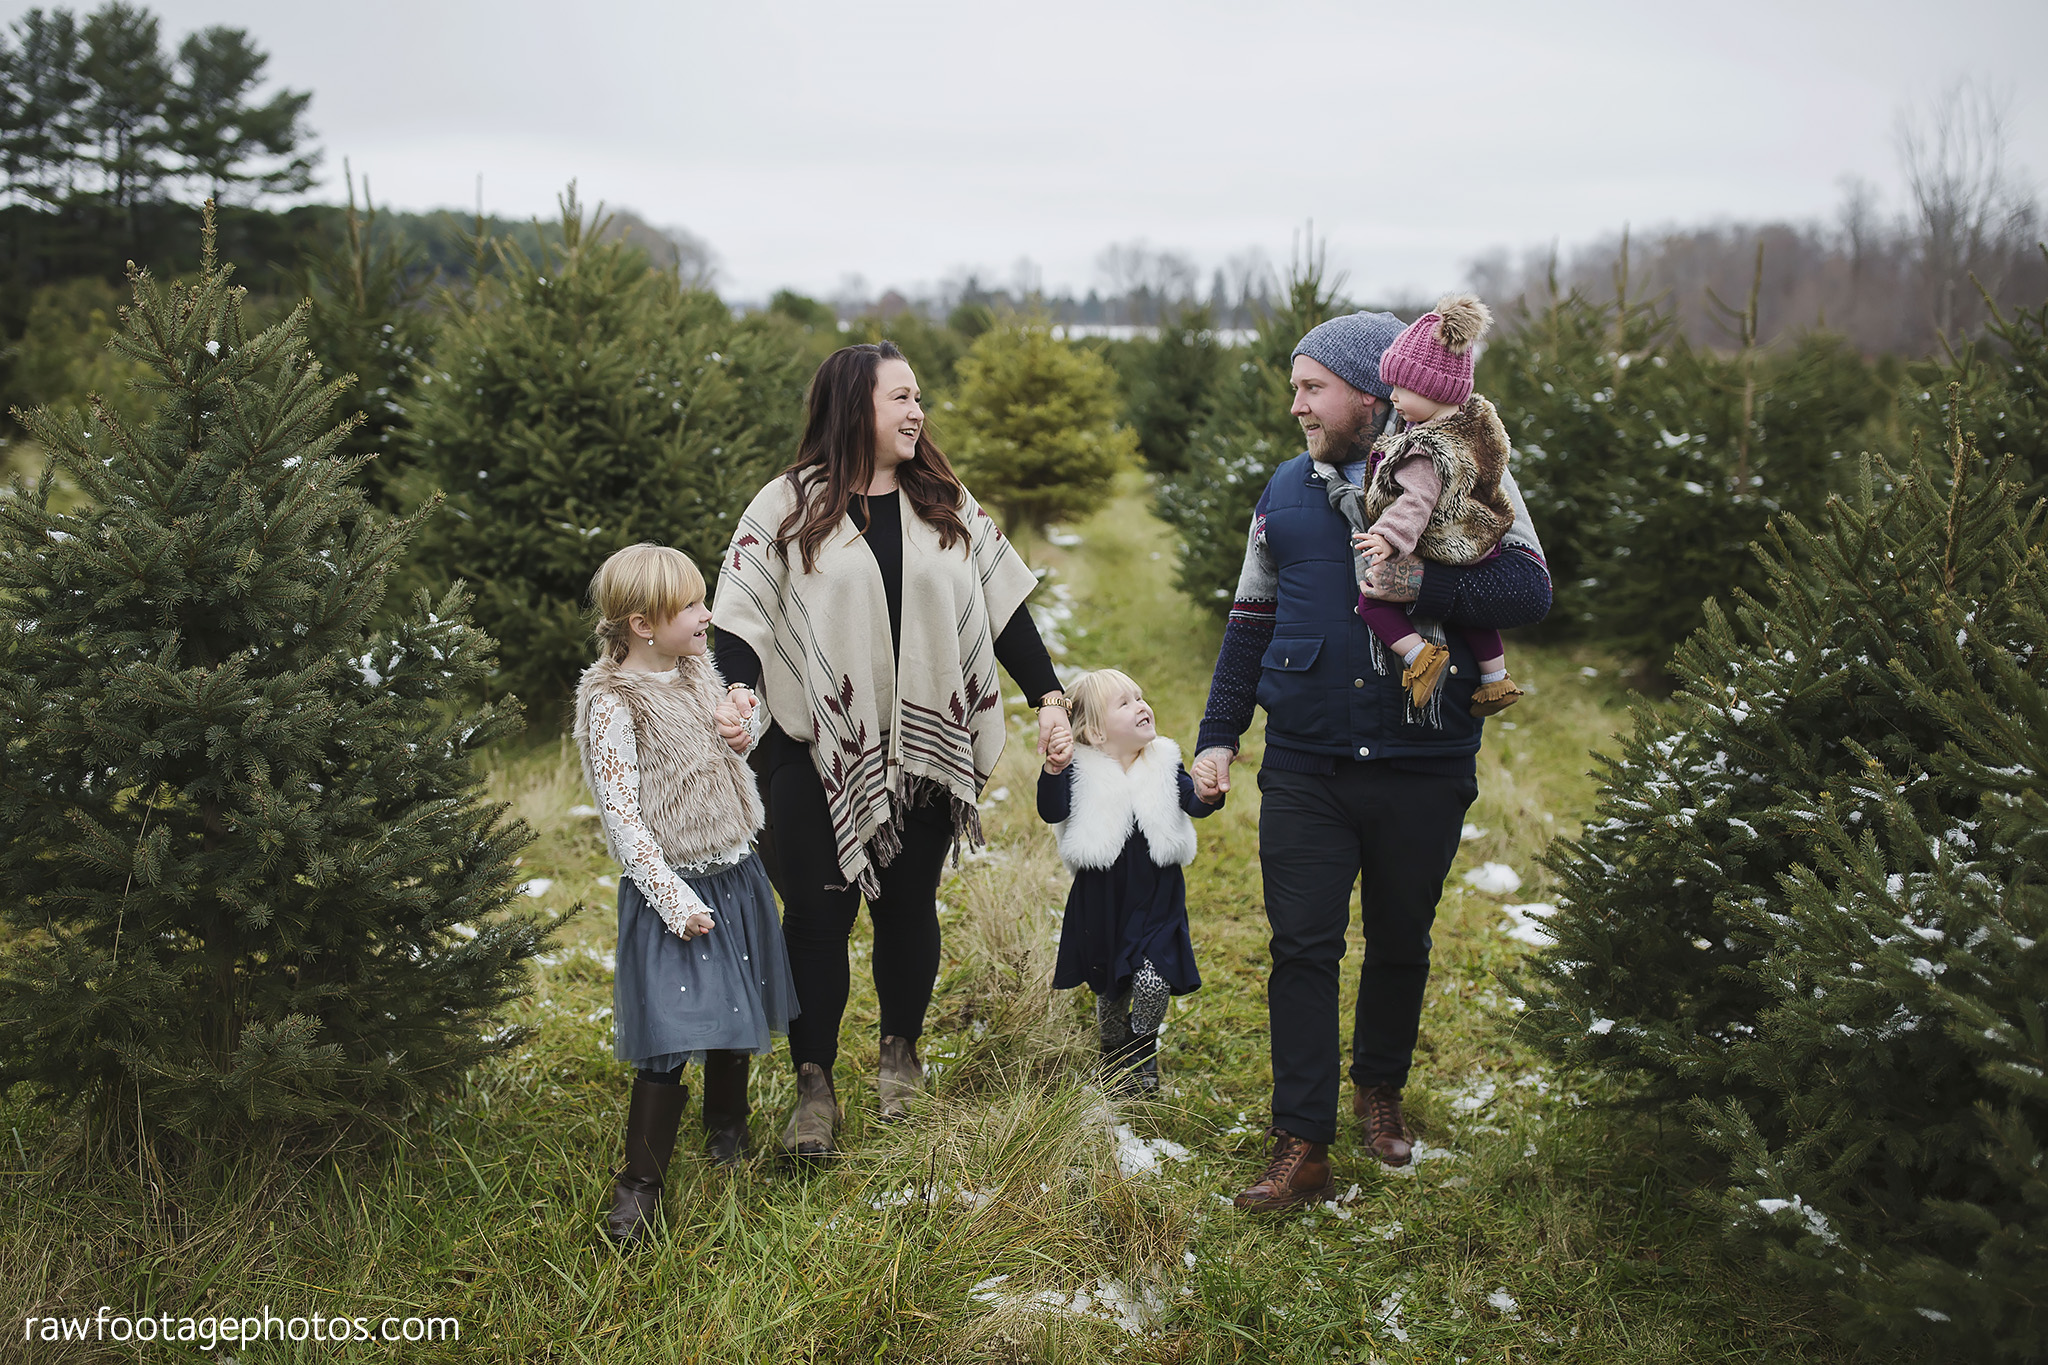 london_ontario_family_photographer-raw_footage_photography-tree_farm_minis-christmas_sessions-winter0031.jpg